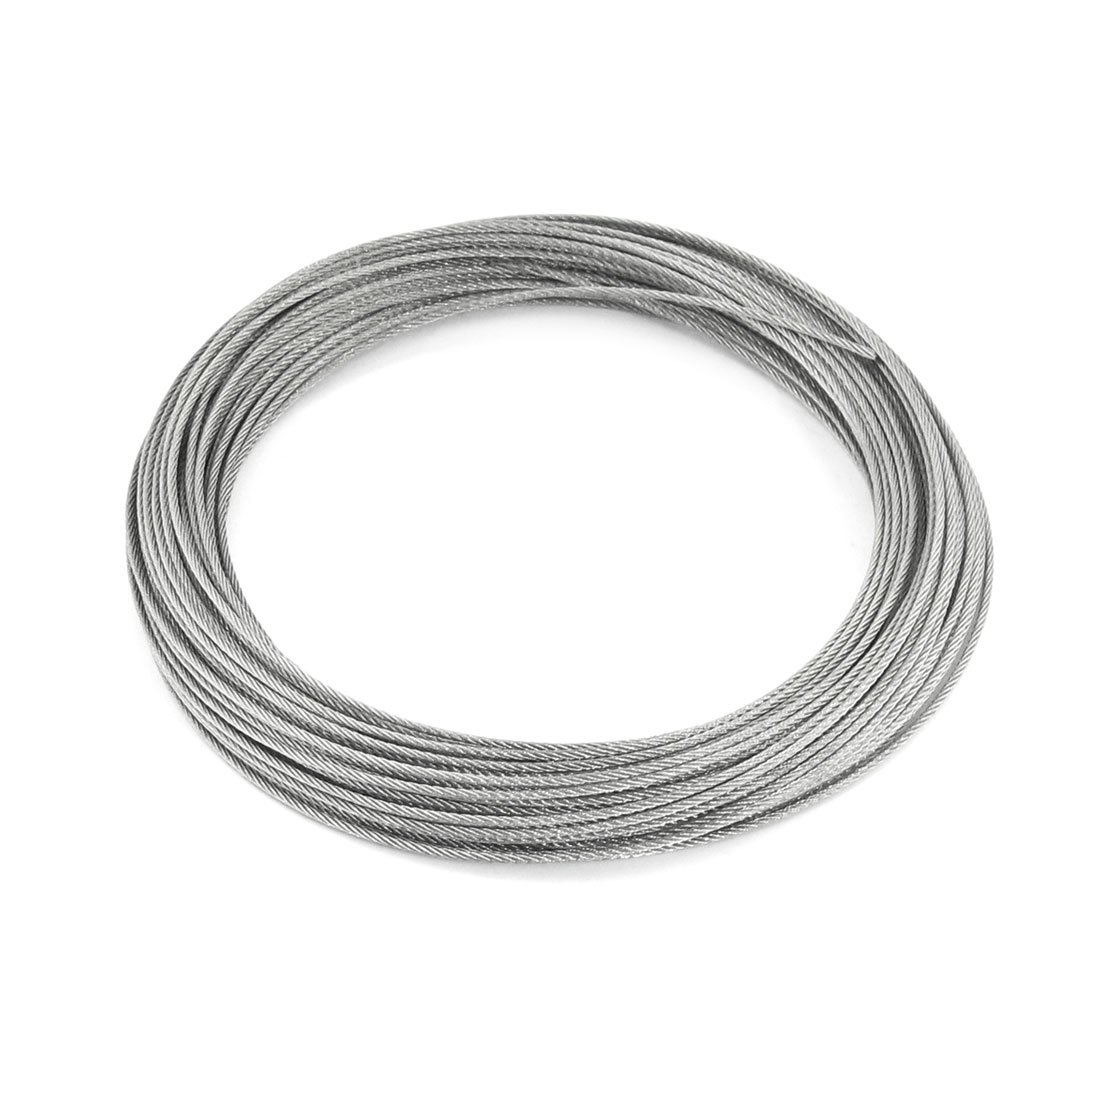 sourcing map Stainless Steel Wire Rope Cable 1mm 0.04 inch Dia 32.8ft 10m Length 19 Gauge 304 Grade for Hoist Lifting Grinder Pulley Wheel